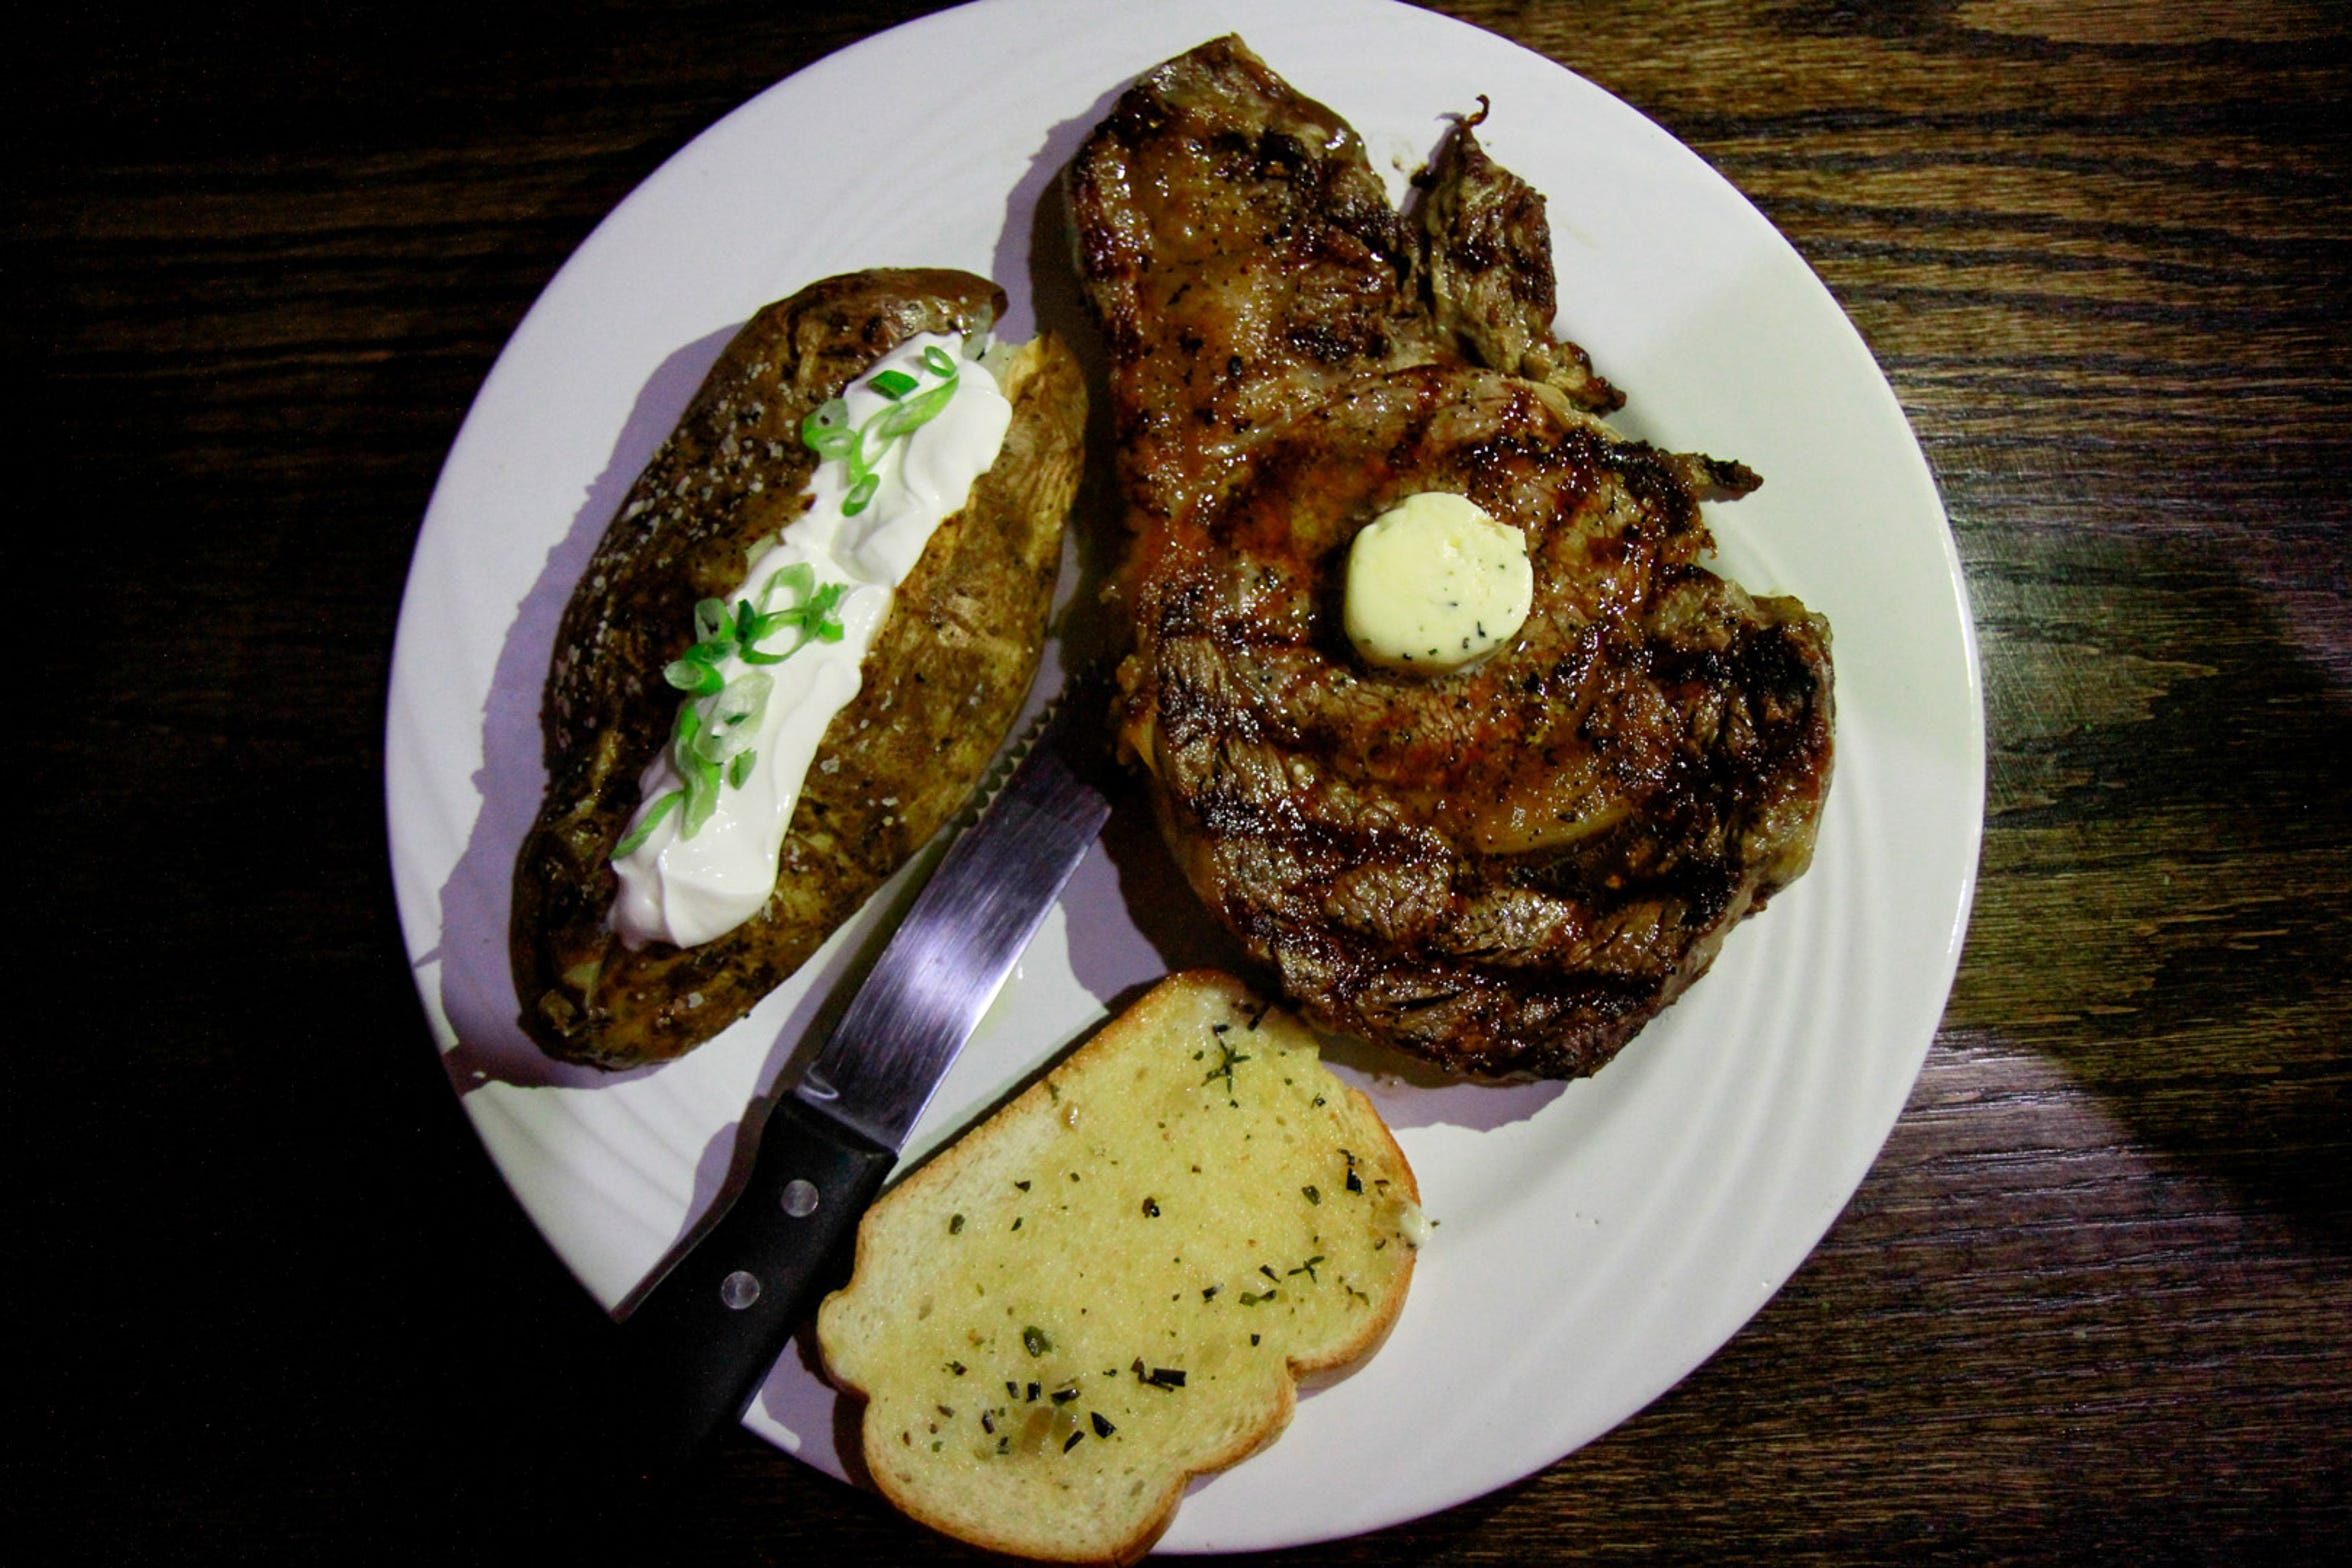 The Rib-eye from the new dinner menu at Water to Wine